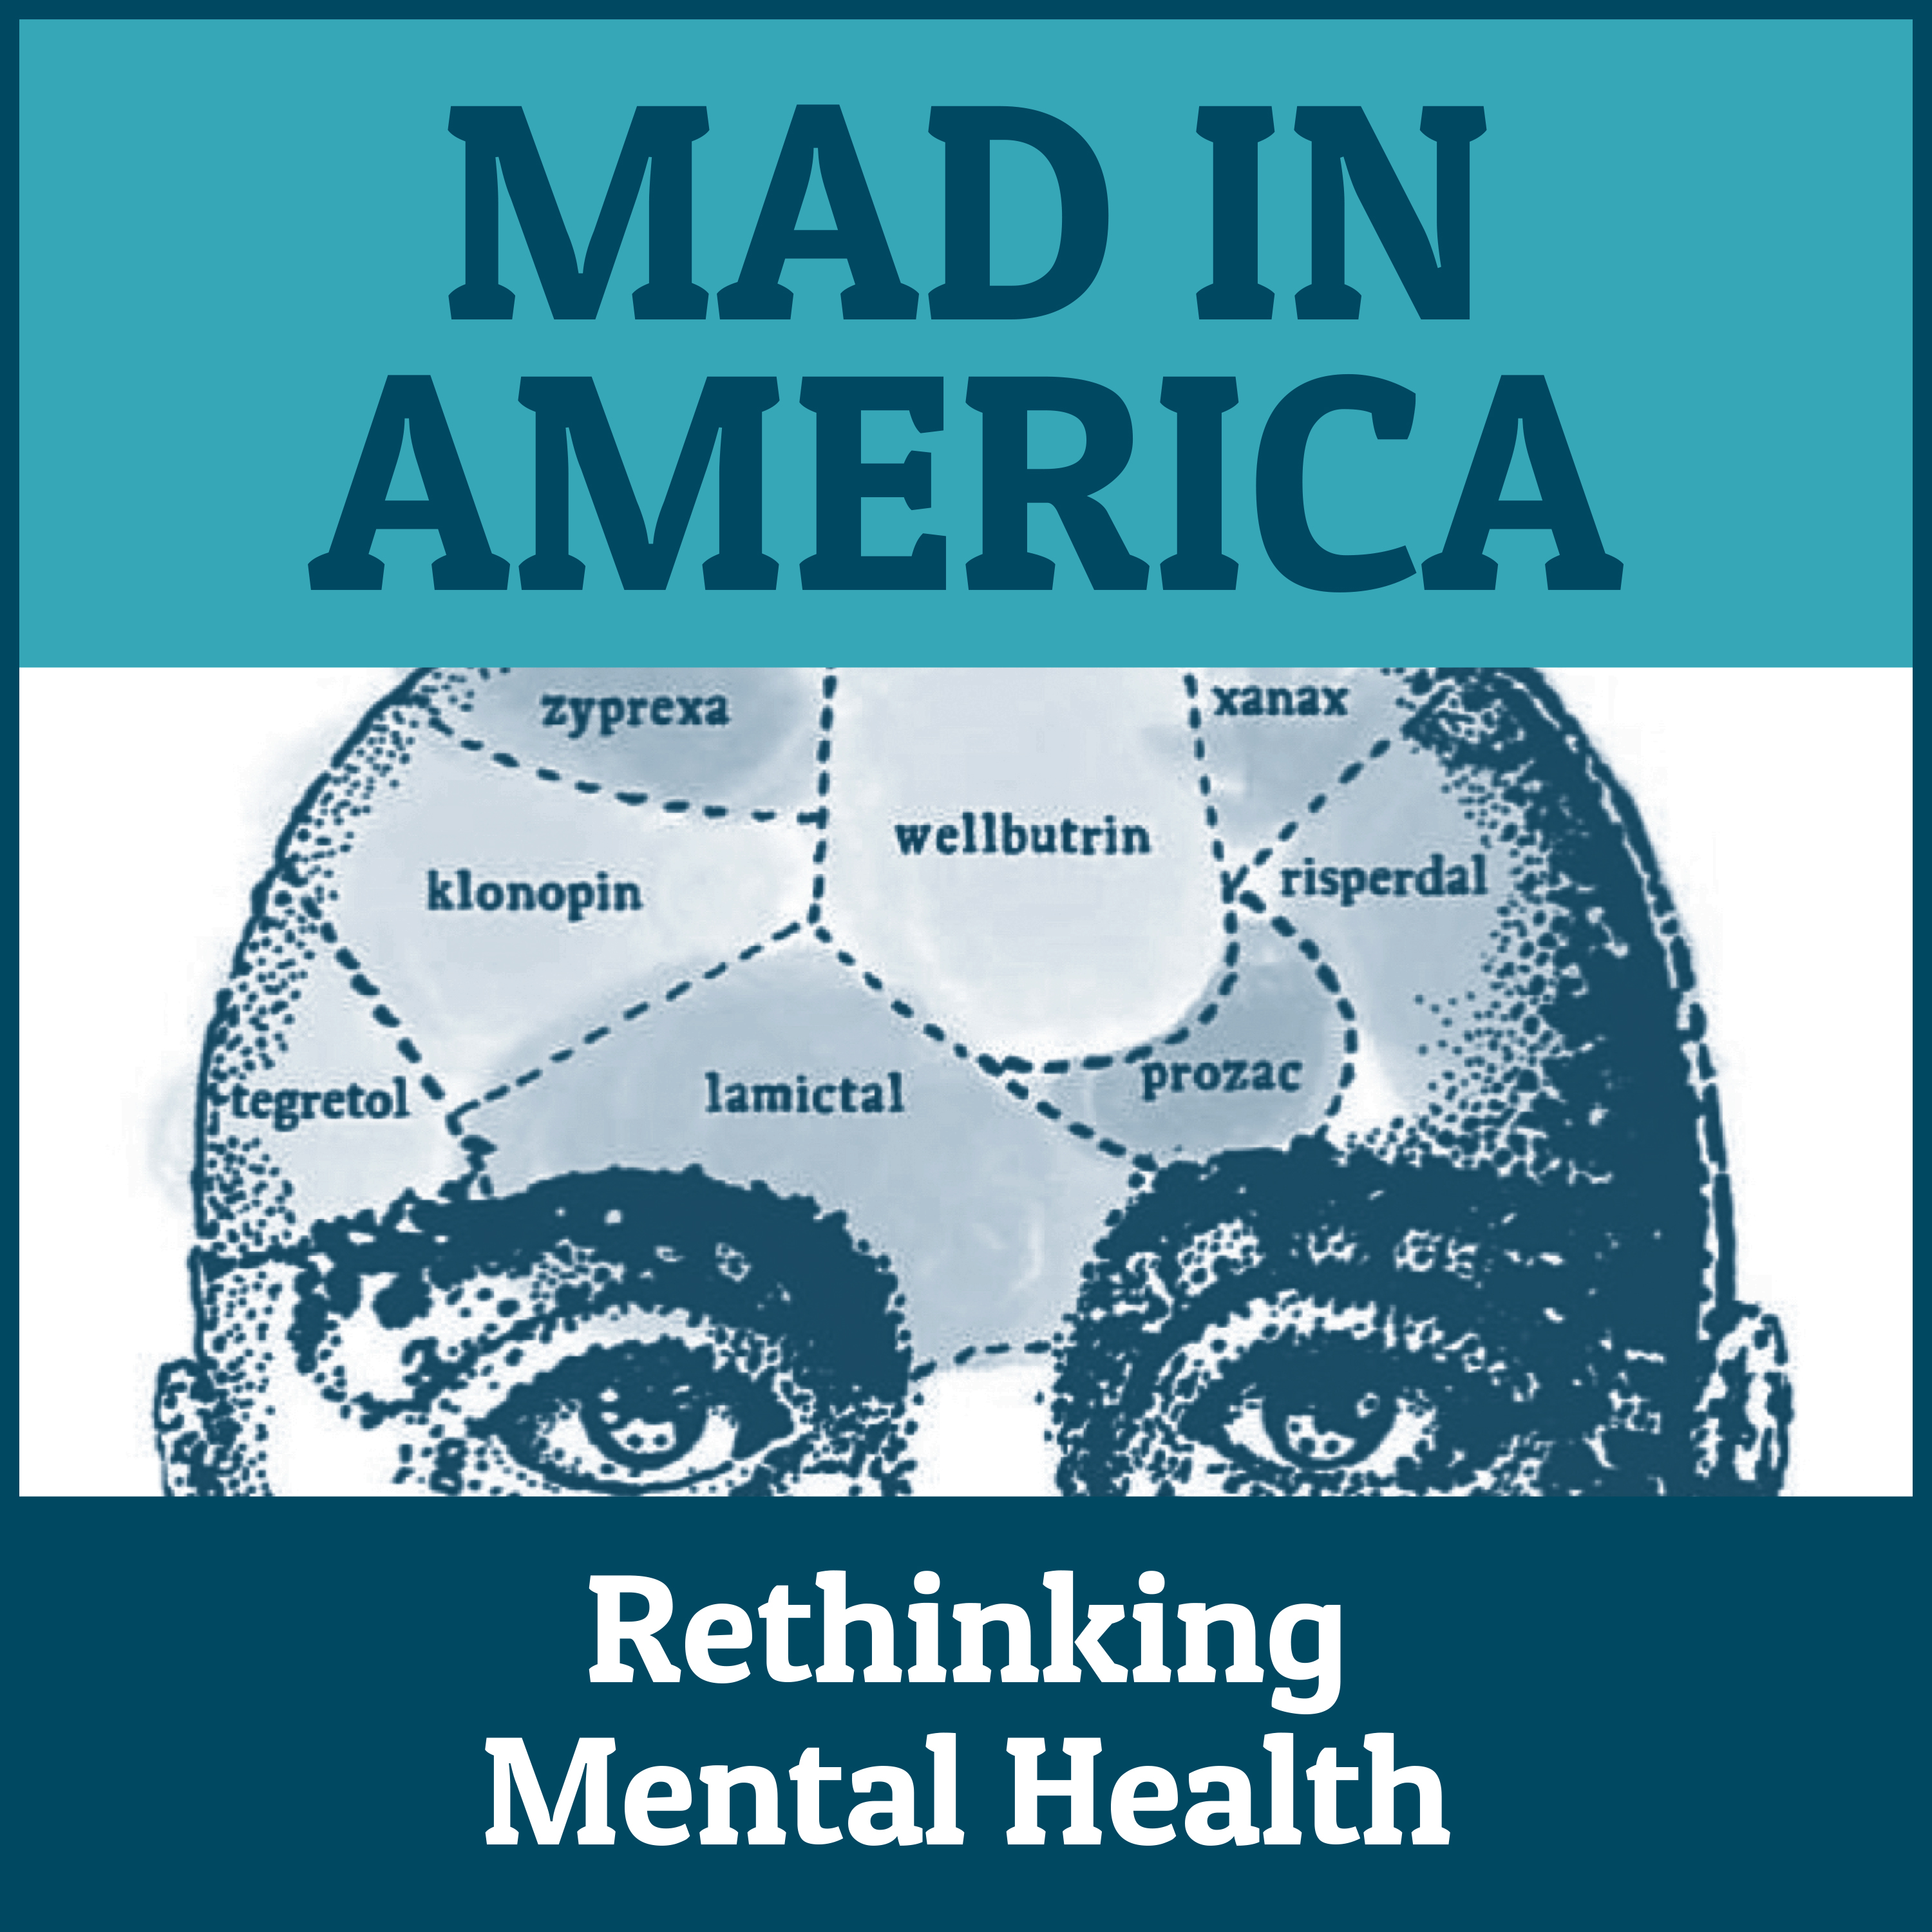 Mad in America: Rethinking Mental Health - Peter Sterling - What Does Our Species Require for a Healthy Life?